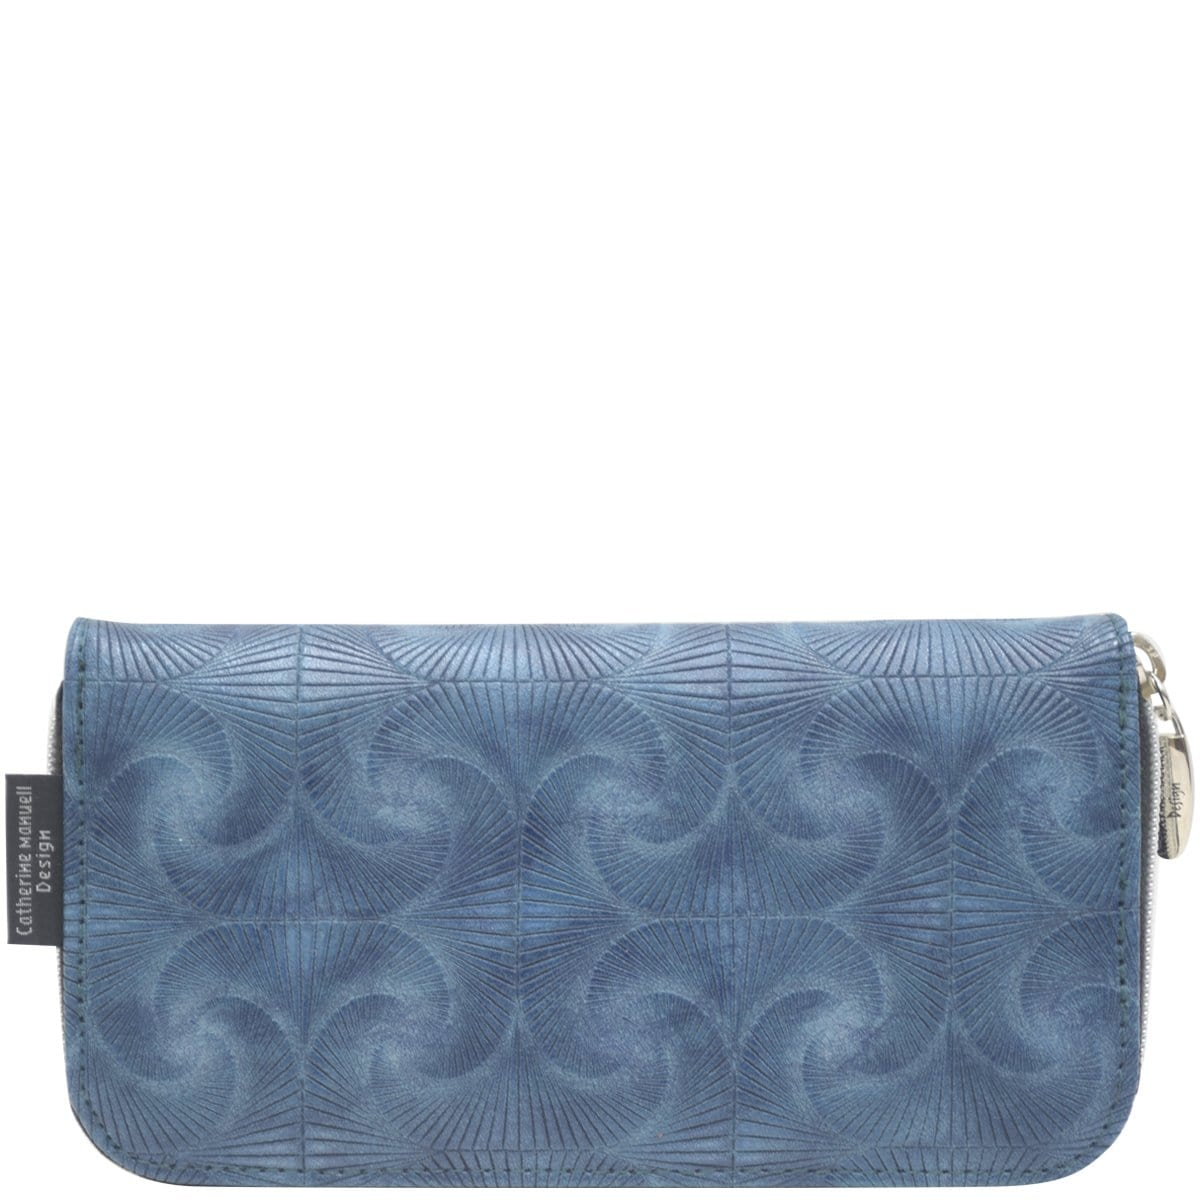 Curved Zip Section Wallet - Navy Fan Print - Last One!